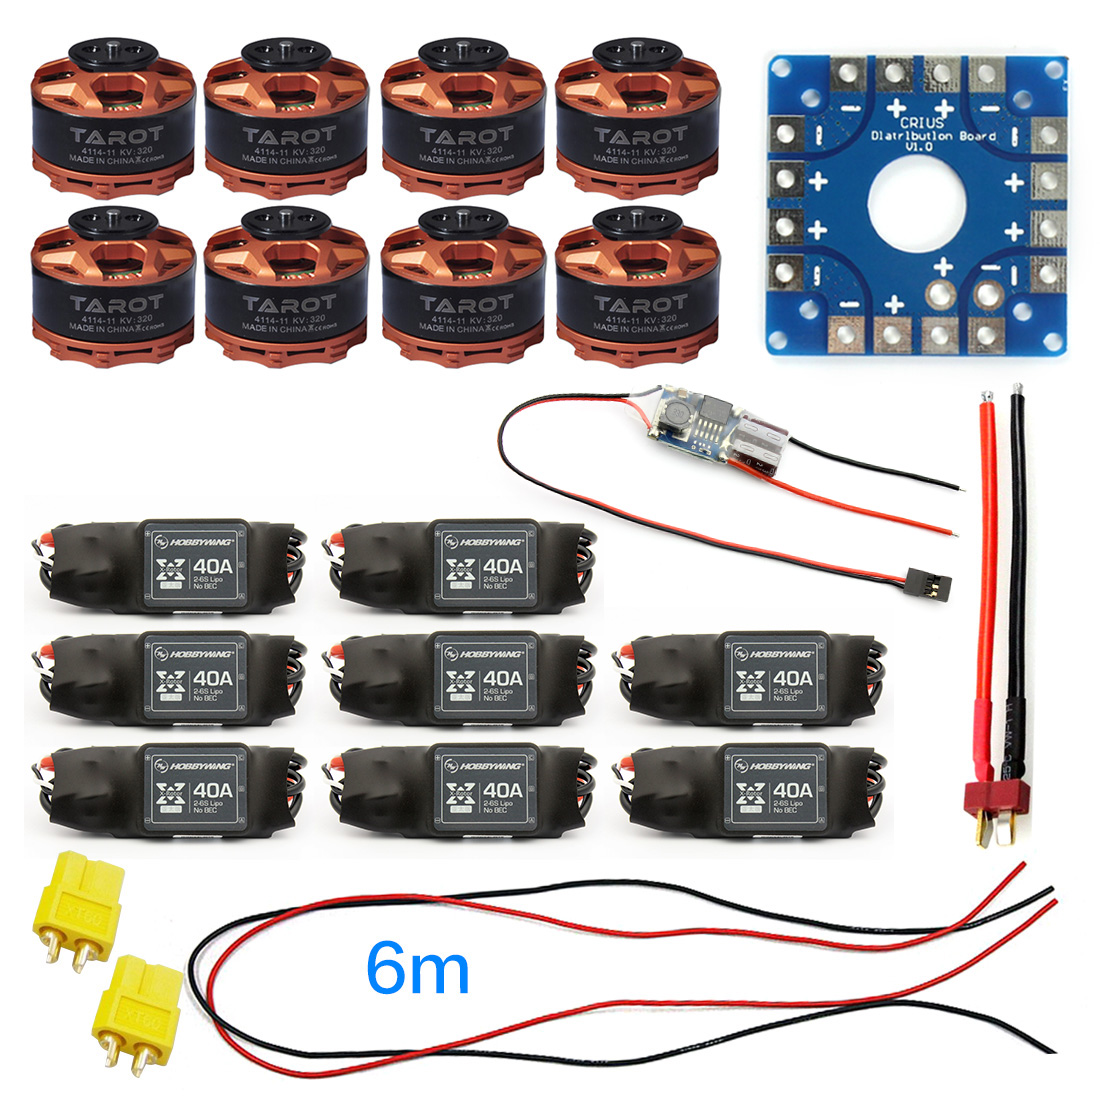 JMT Assembled Kit 40A ESC Controller Connection Board Wire Tarot 320KV Motor for 8-axle Drone Multi Rotor Hexacopter F04997-G zy 25 diy solderless assembled 25 hole mini bread board test board multi colored 1 set